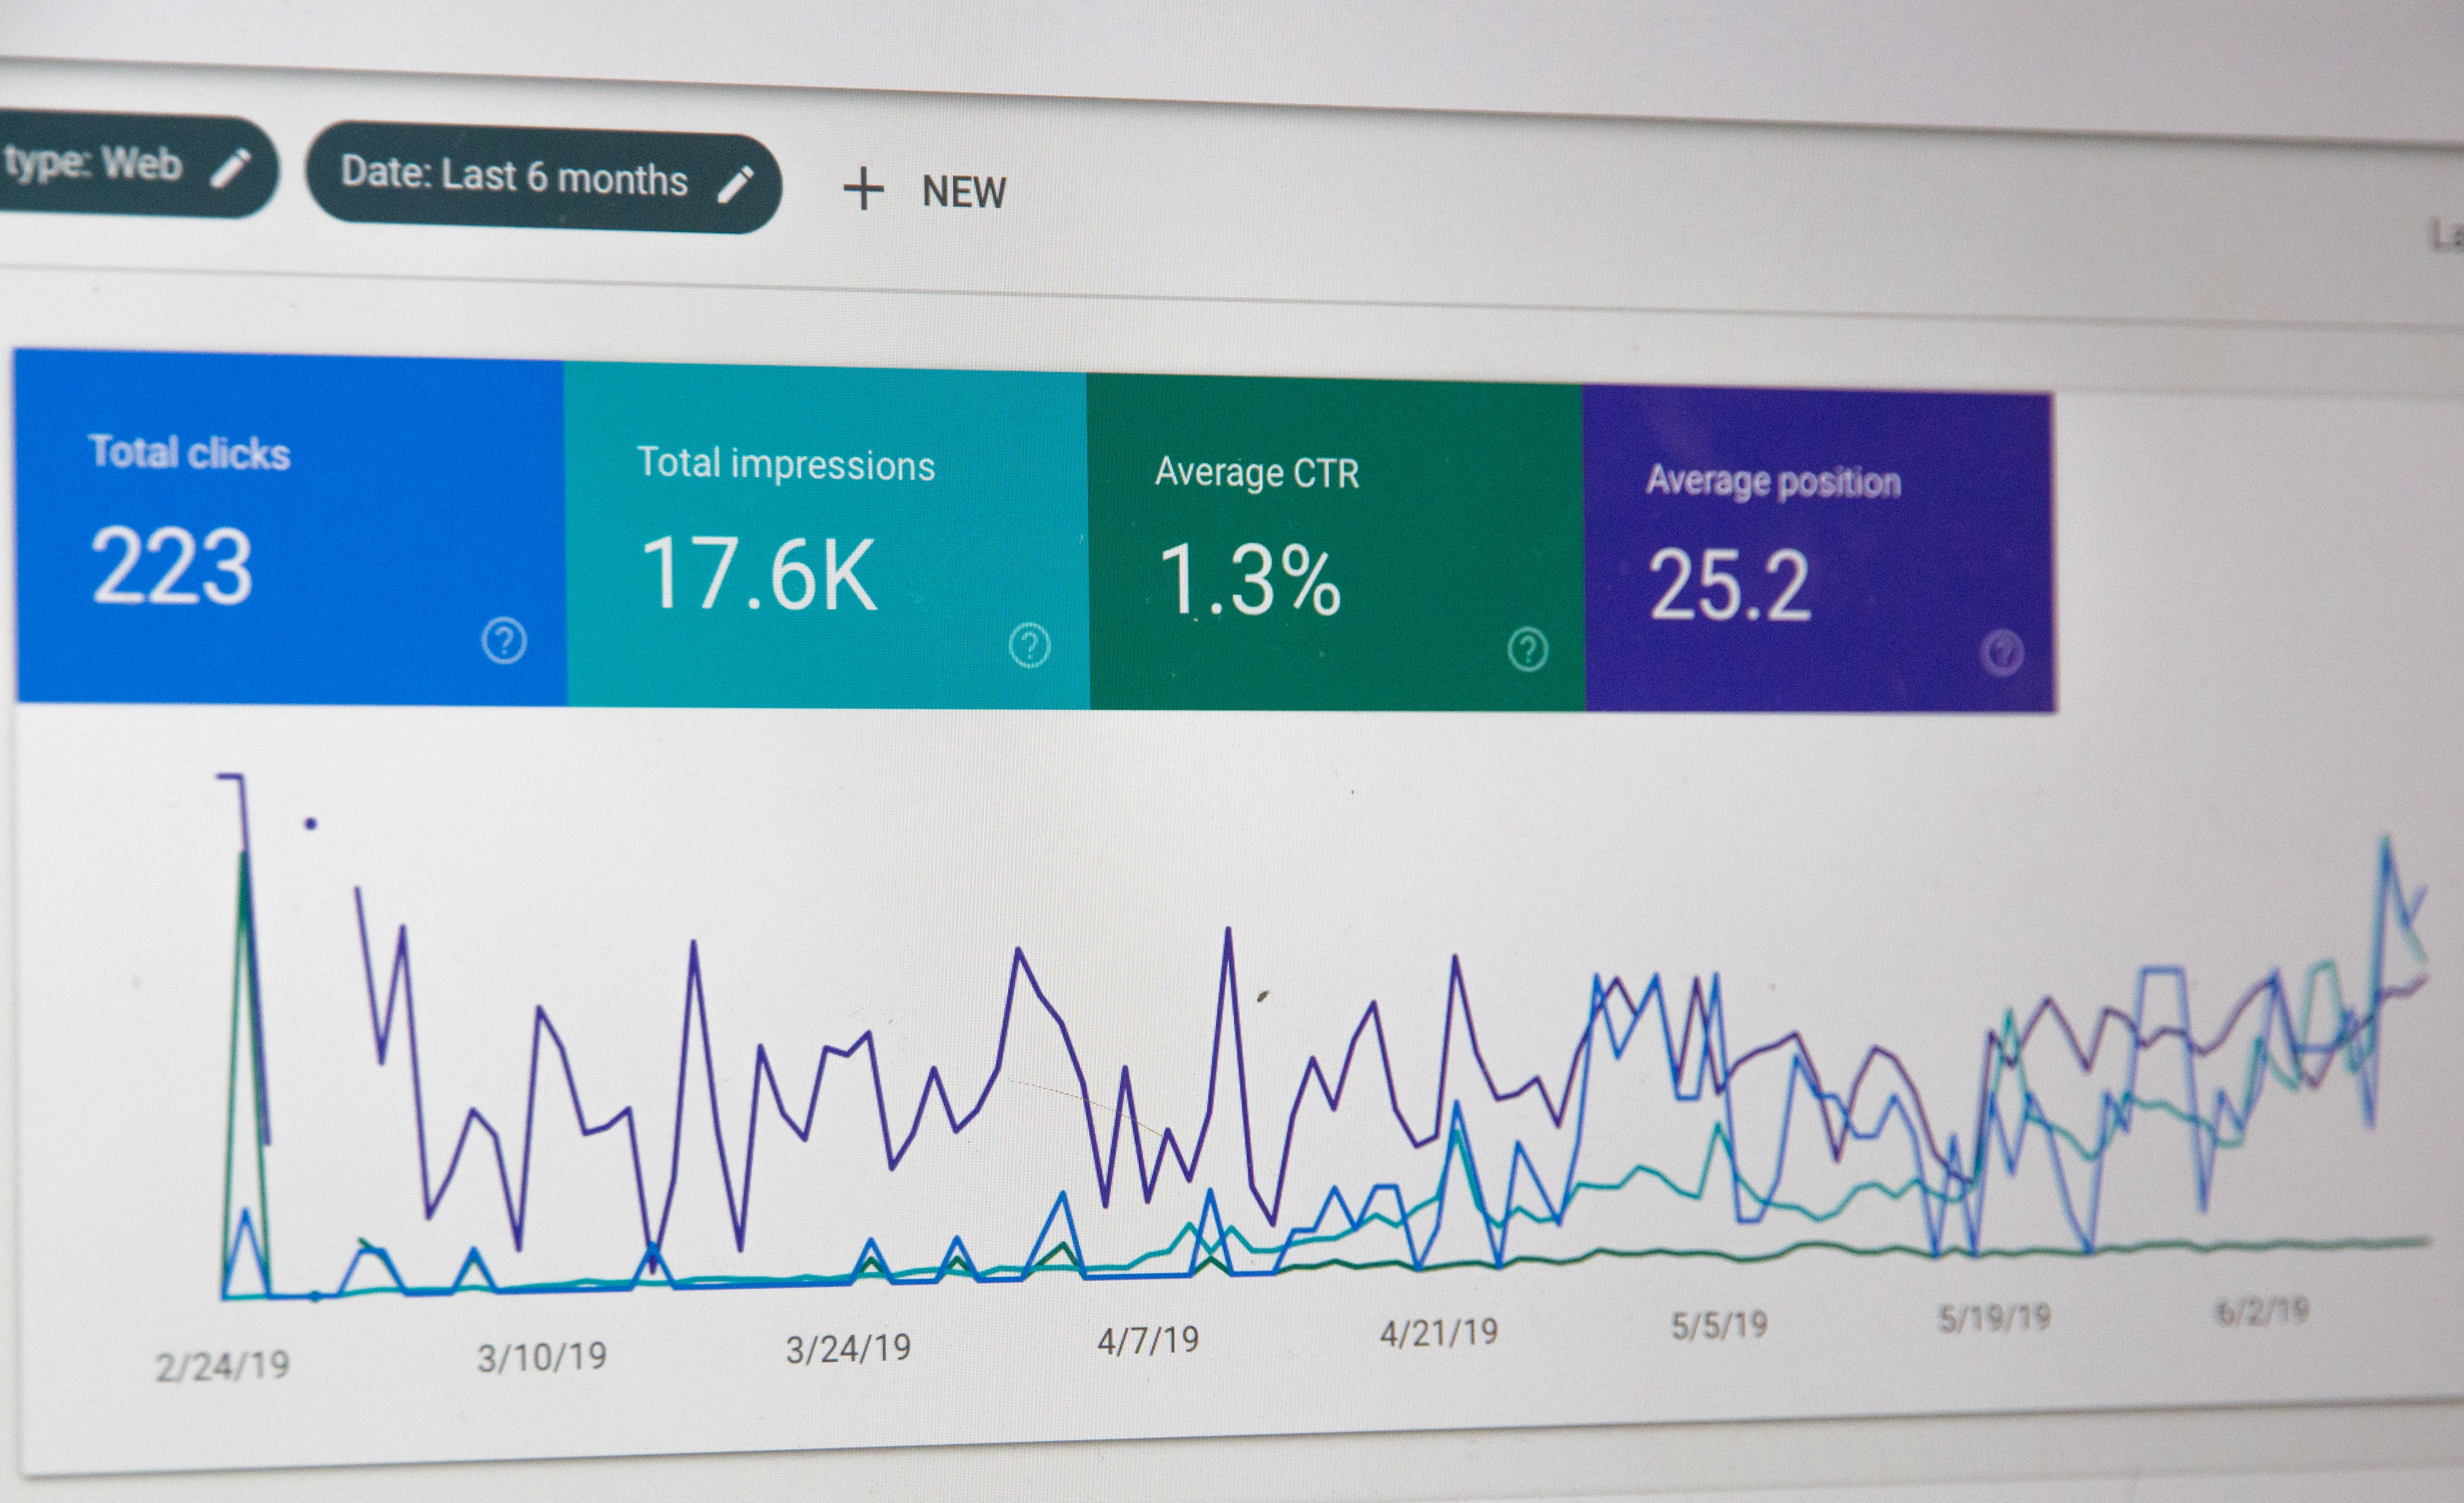 The Metrics That Matter Aren't What You'd Expect